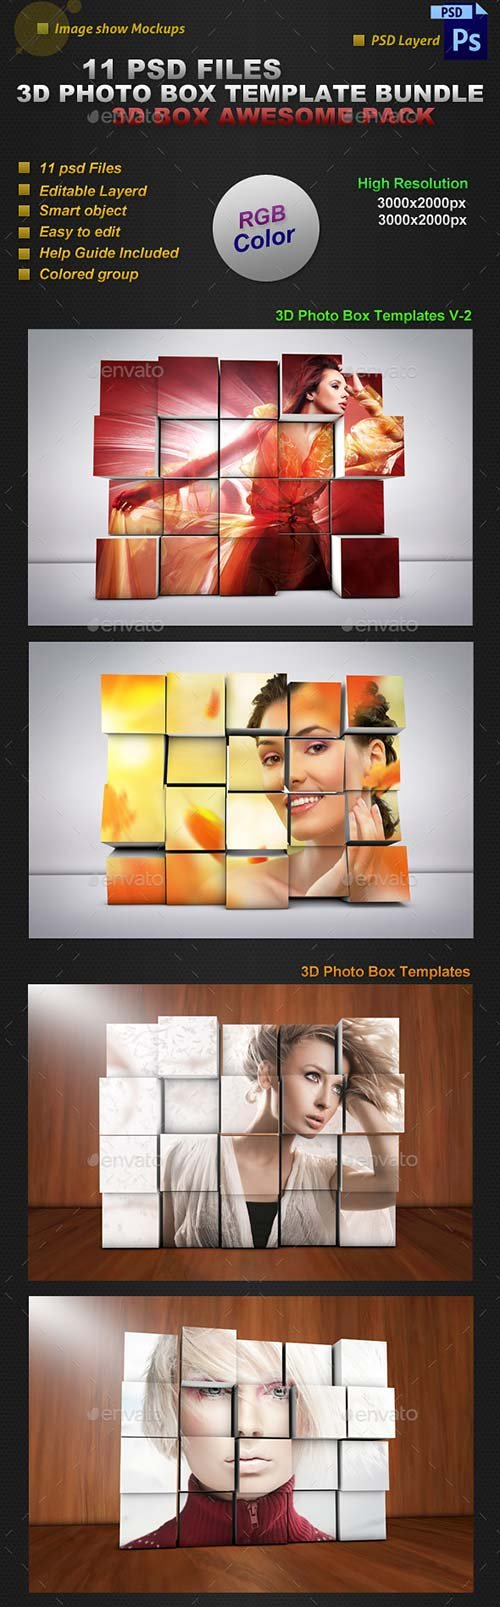 GraphicRiver 3D Photo Box Templates Bundle